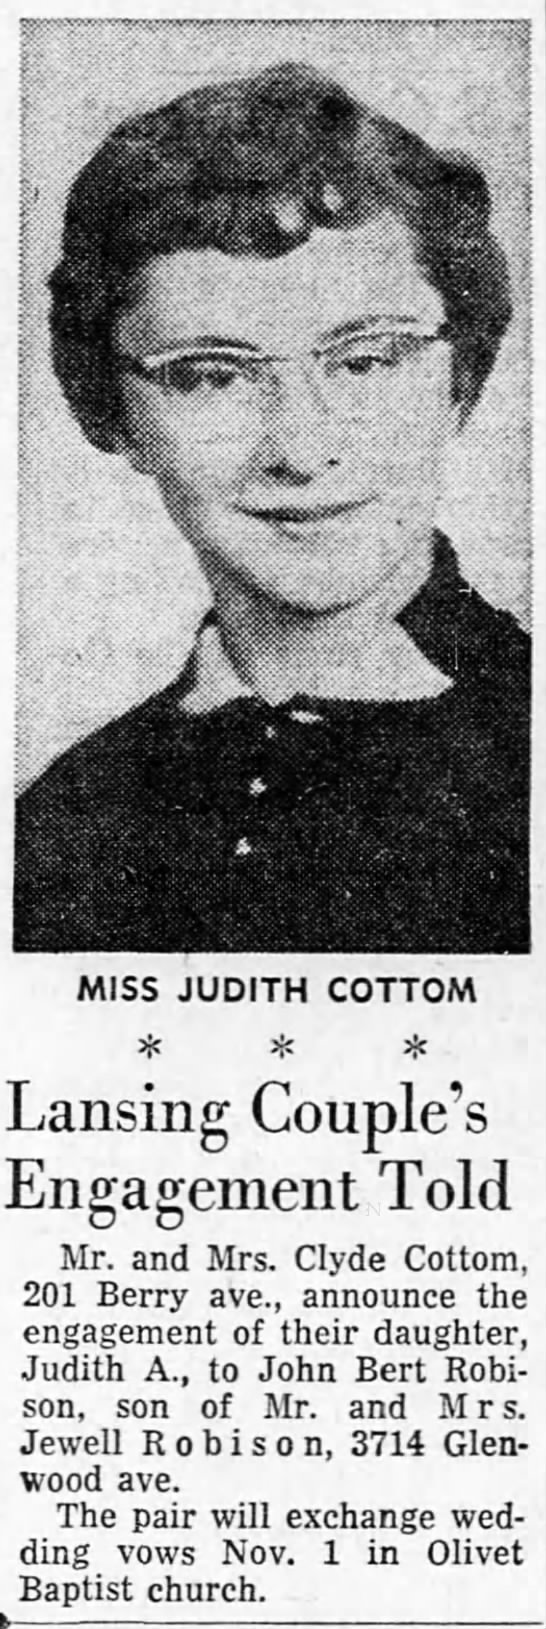 Cottom Judith Clydes daughter engagement Sun Sept 28 1958 page 58 - MISS JUDITH COTTOM 3C ifi Lansing Couple's...